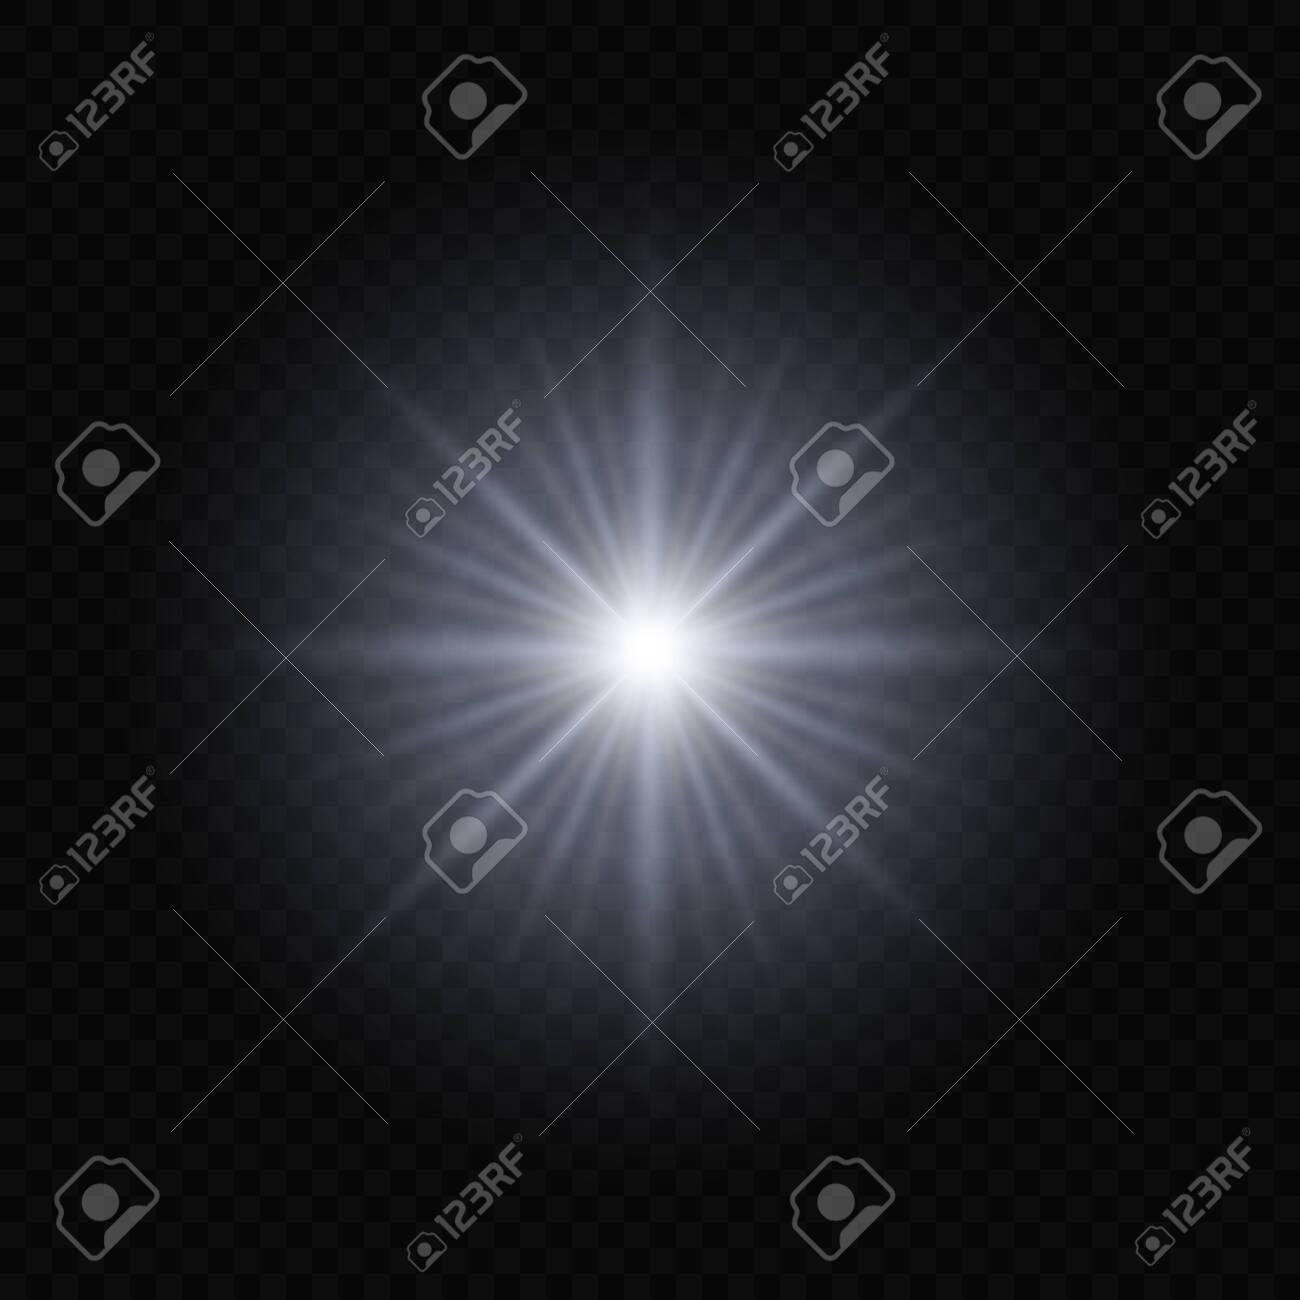 Sun light flash with lens flare effect on transparent background - 150157275